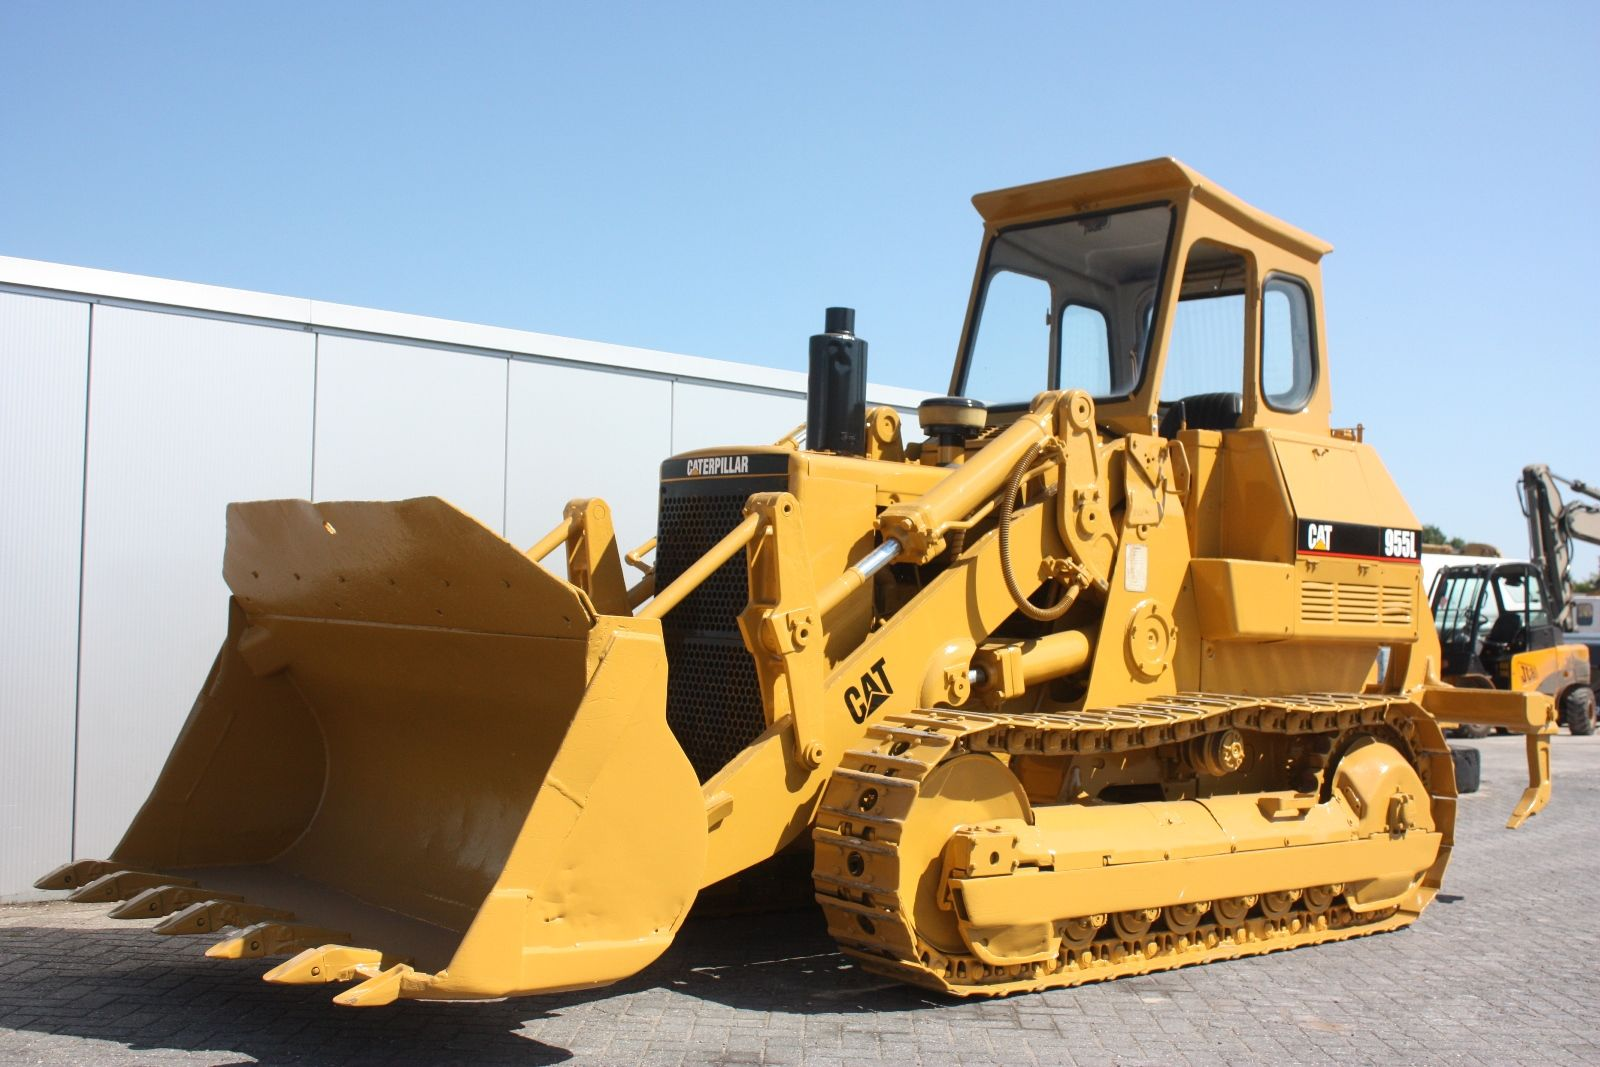 CAT CRAWLER #LOADER Either a Caterpillar 977L or a 983B